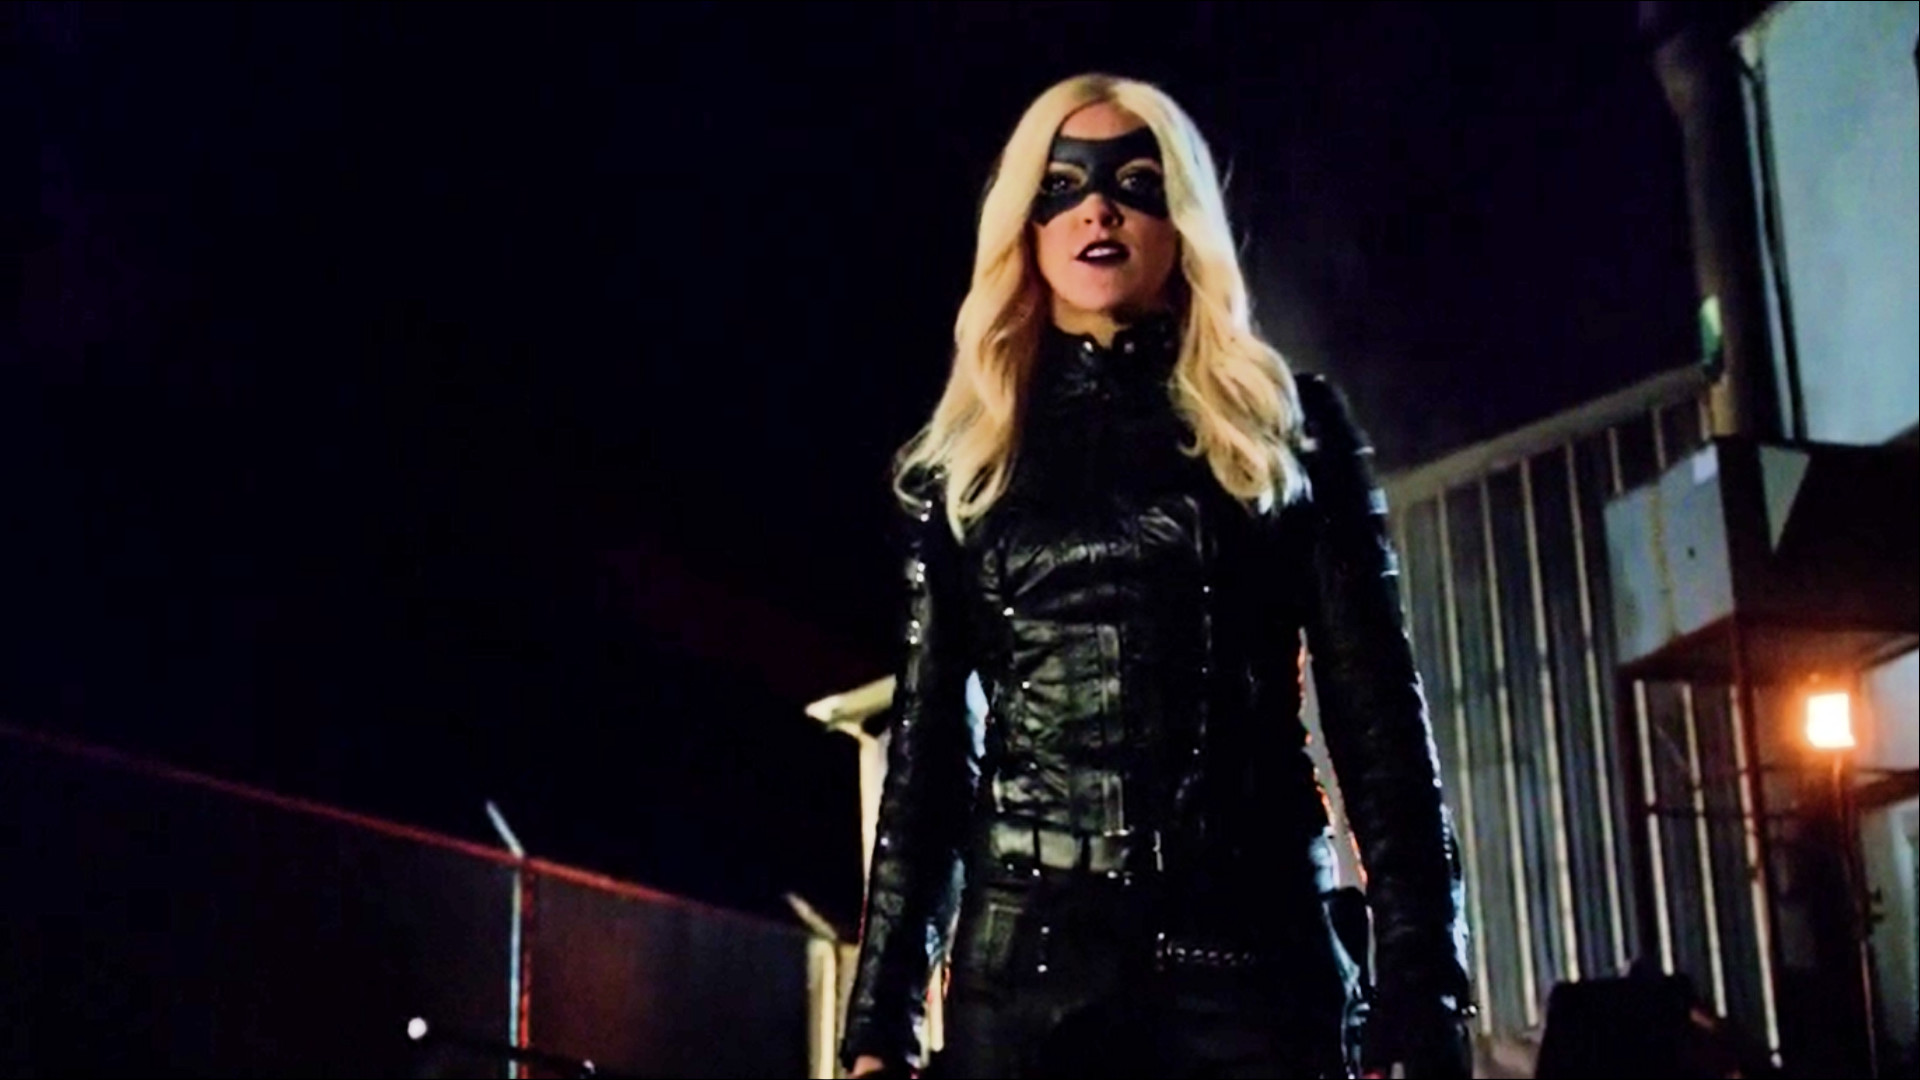 Arrow season 3 episode 10 returned and showed us that even though the show  is called